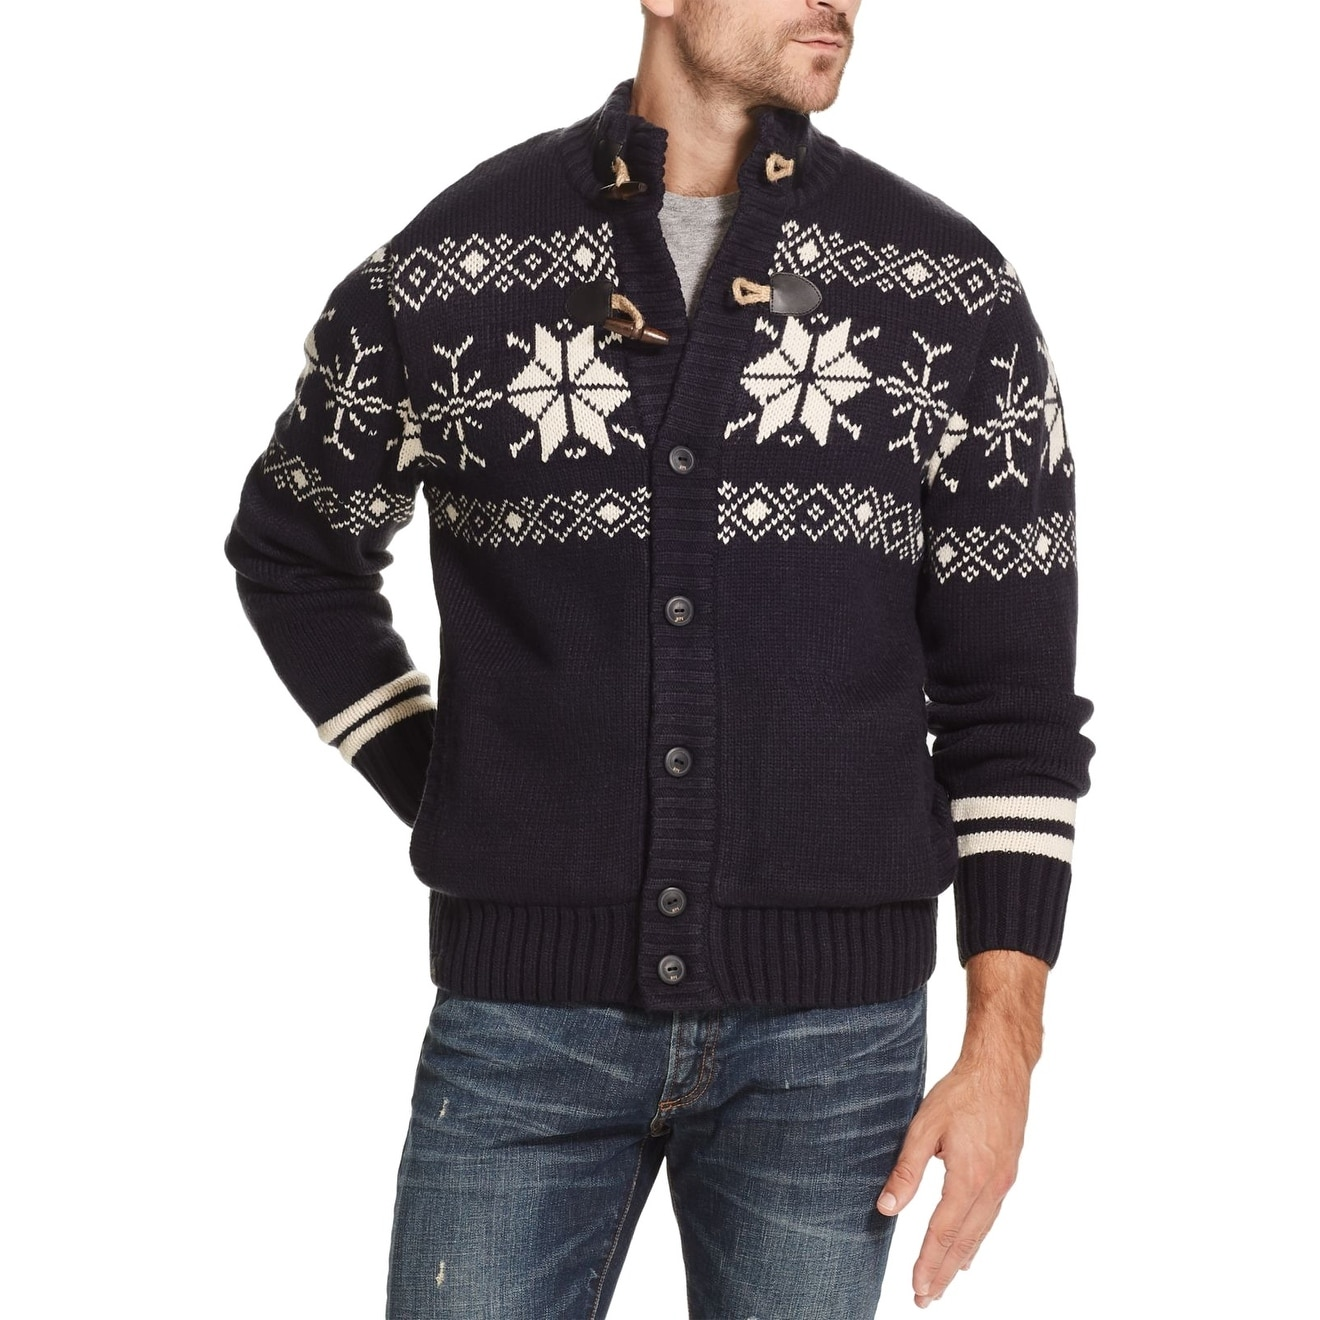 8915343422fe64 Weatherproof Men's Clothing   Shop our Best Clothing & Shoes Deals Online  at Overstock